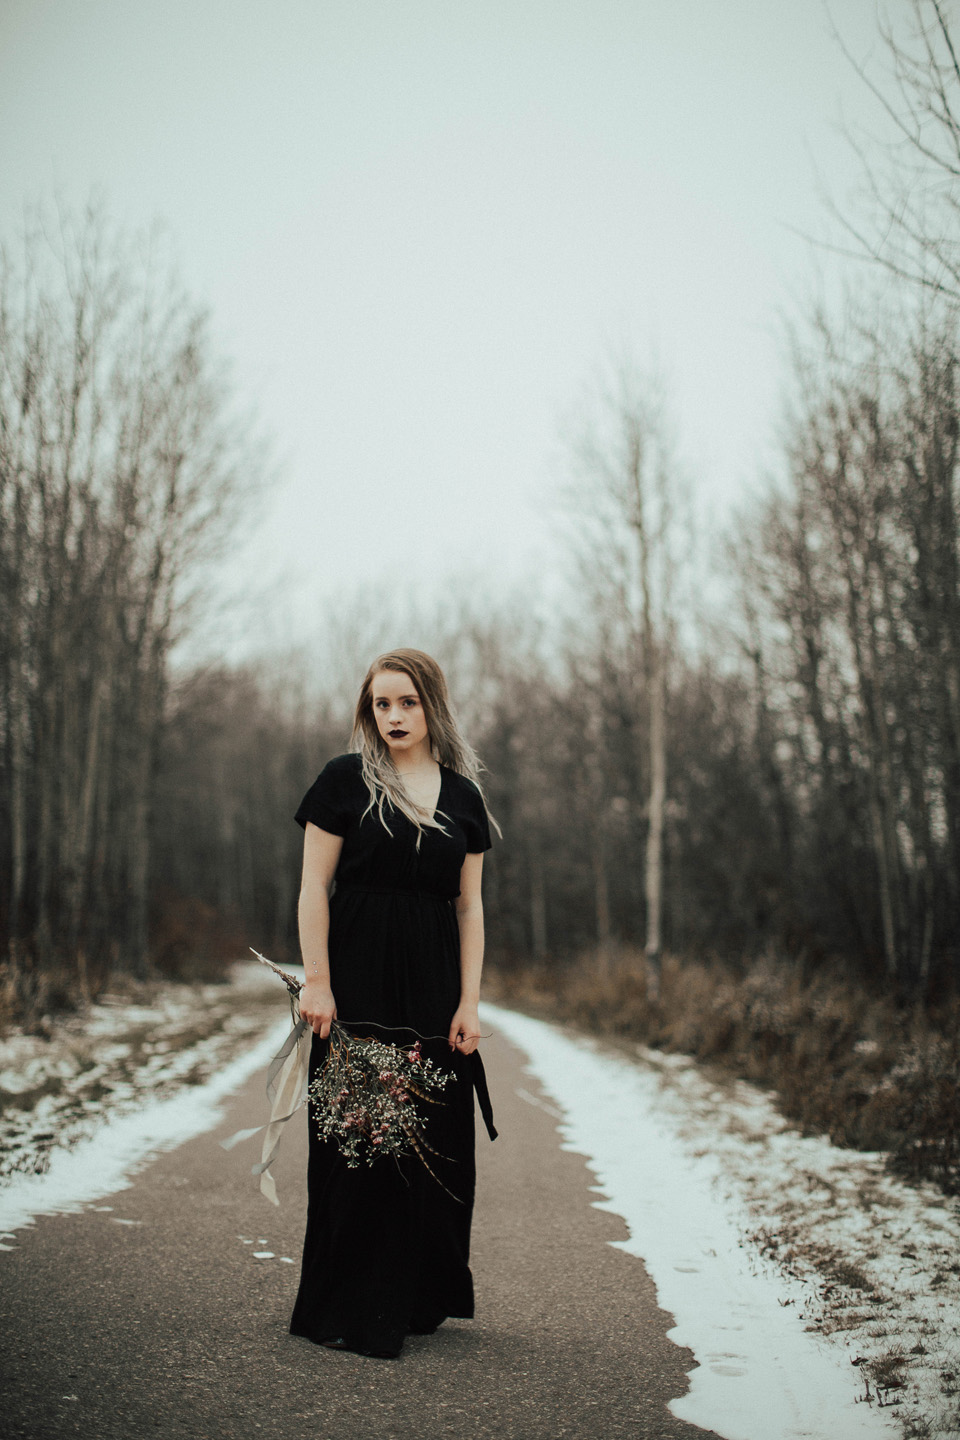 Moody Winter Bridals Edmonton Portrait and Wedding Photographer - Michelle Larmand Photography -075